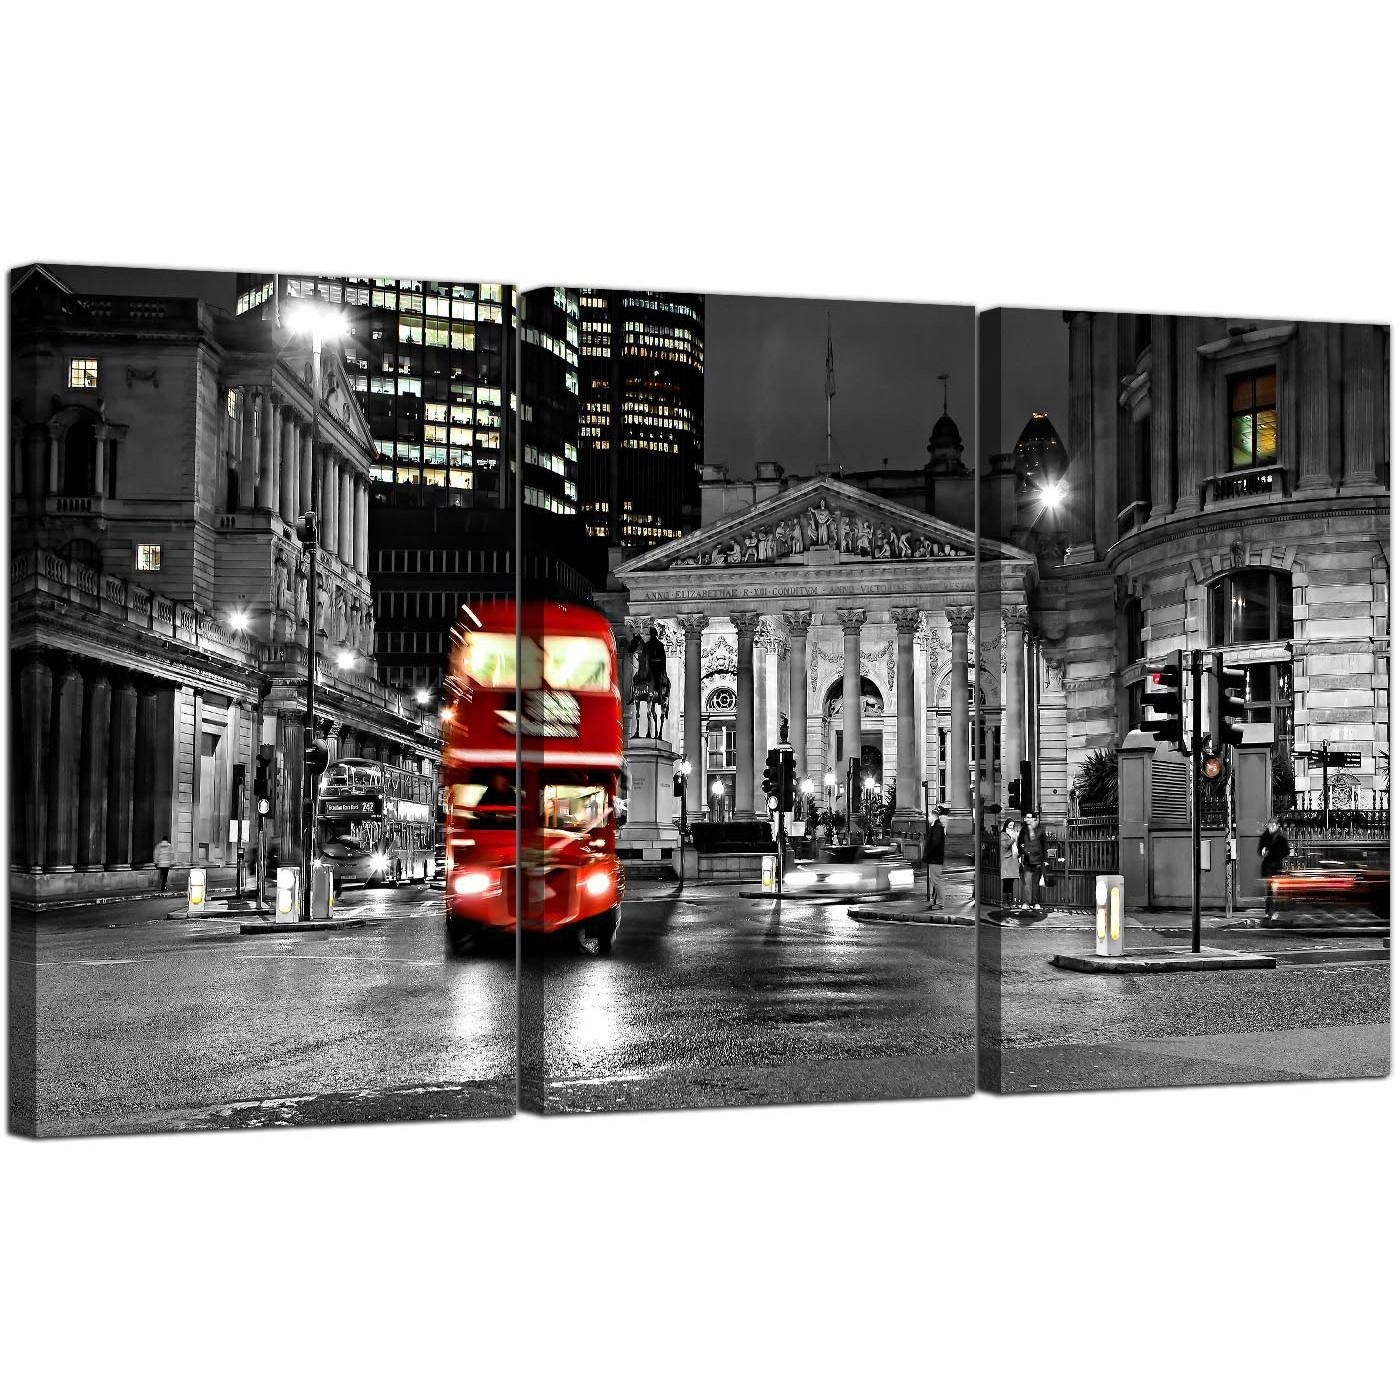 Red London Bus Canvas Wall Art 3 Panel For Your Living Room In Cityscape Canvas Wall Art (View 3 of 20)